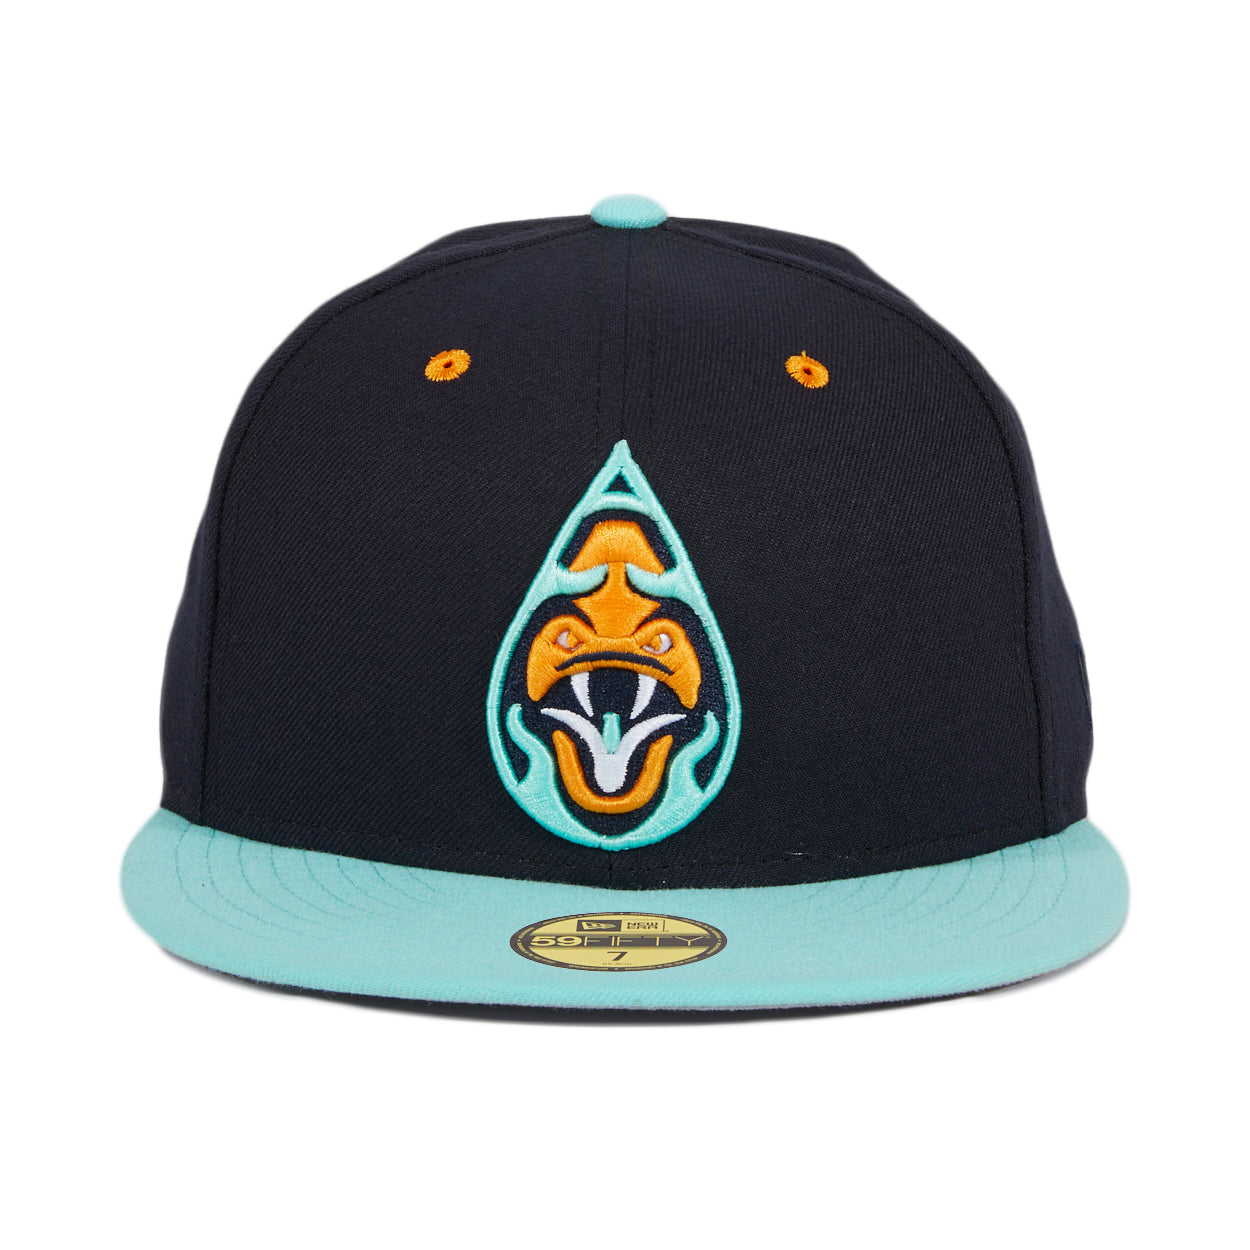 Exclusive New Era 59Fifty Yacumamas De Asheville Hat- 2T Navy,Mint